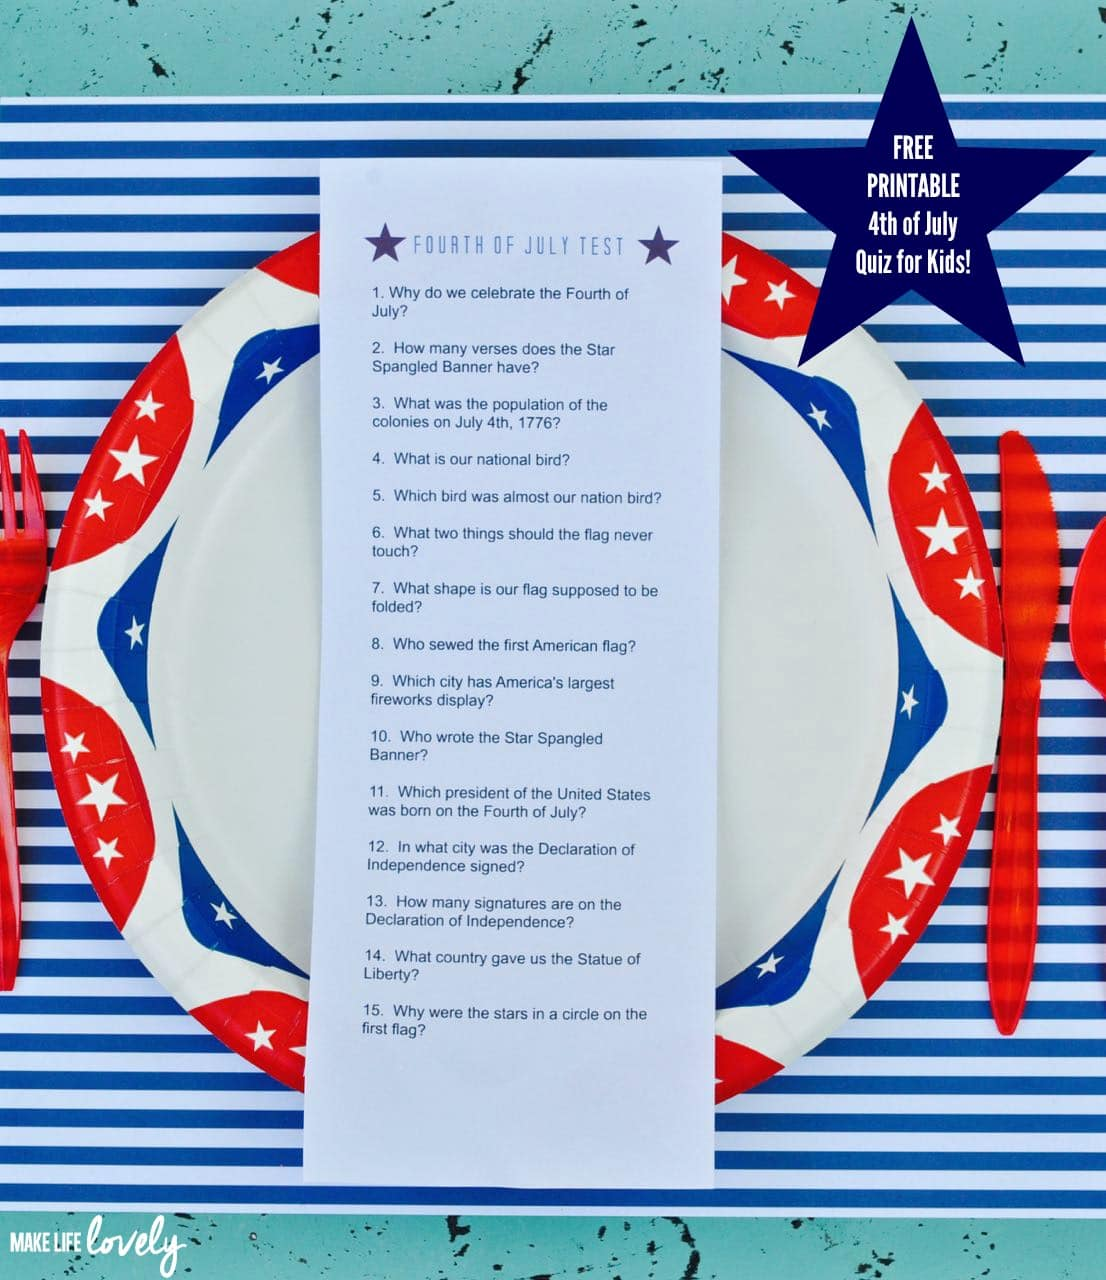 picture relating to 4th of July Trivia Printable titled Totally free Printable Fourth of July Quiz for Small children - Crank out Existence Gorgeous